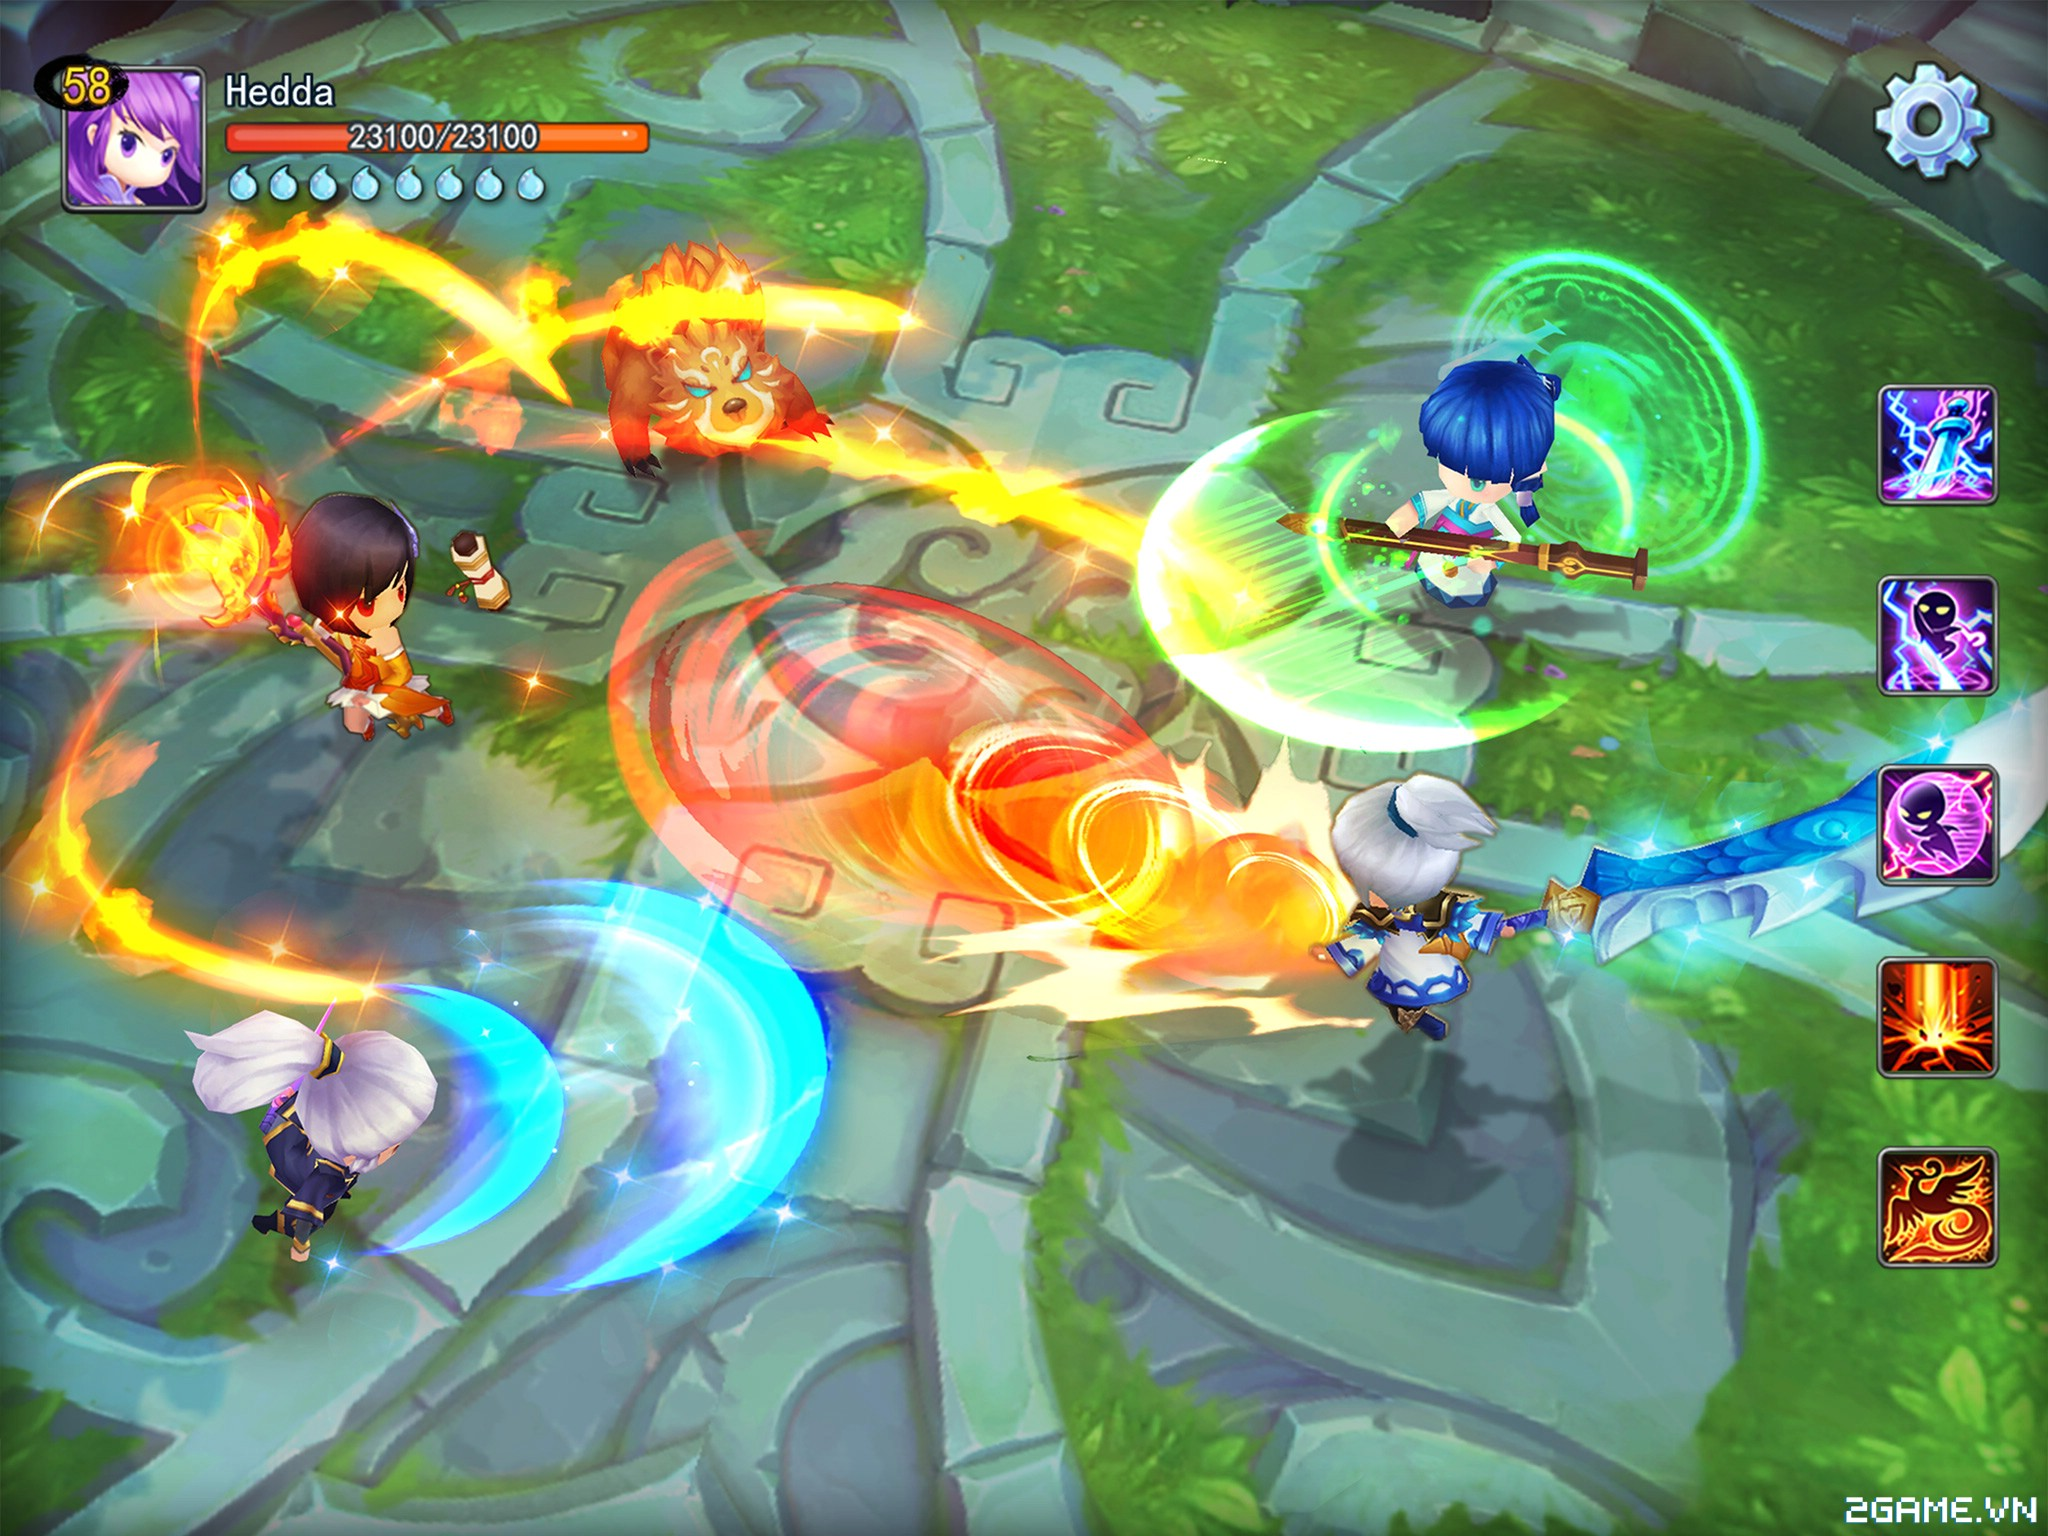 2game_thein_ha_mobile_anh_3s.jpg (2048×1536)